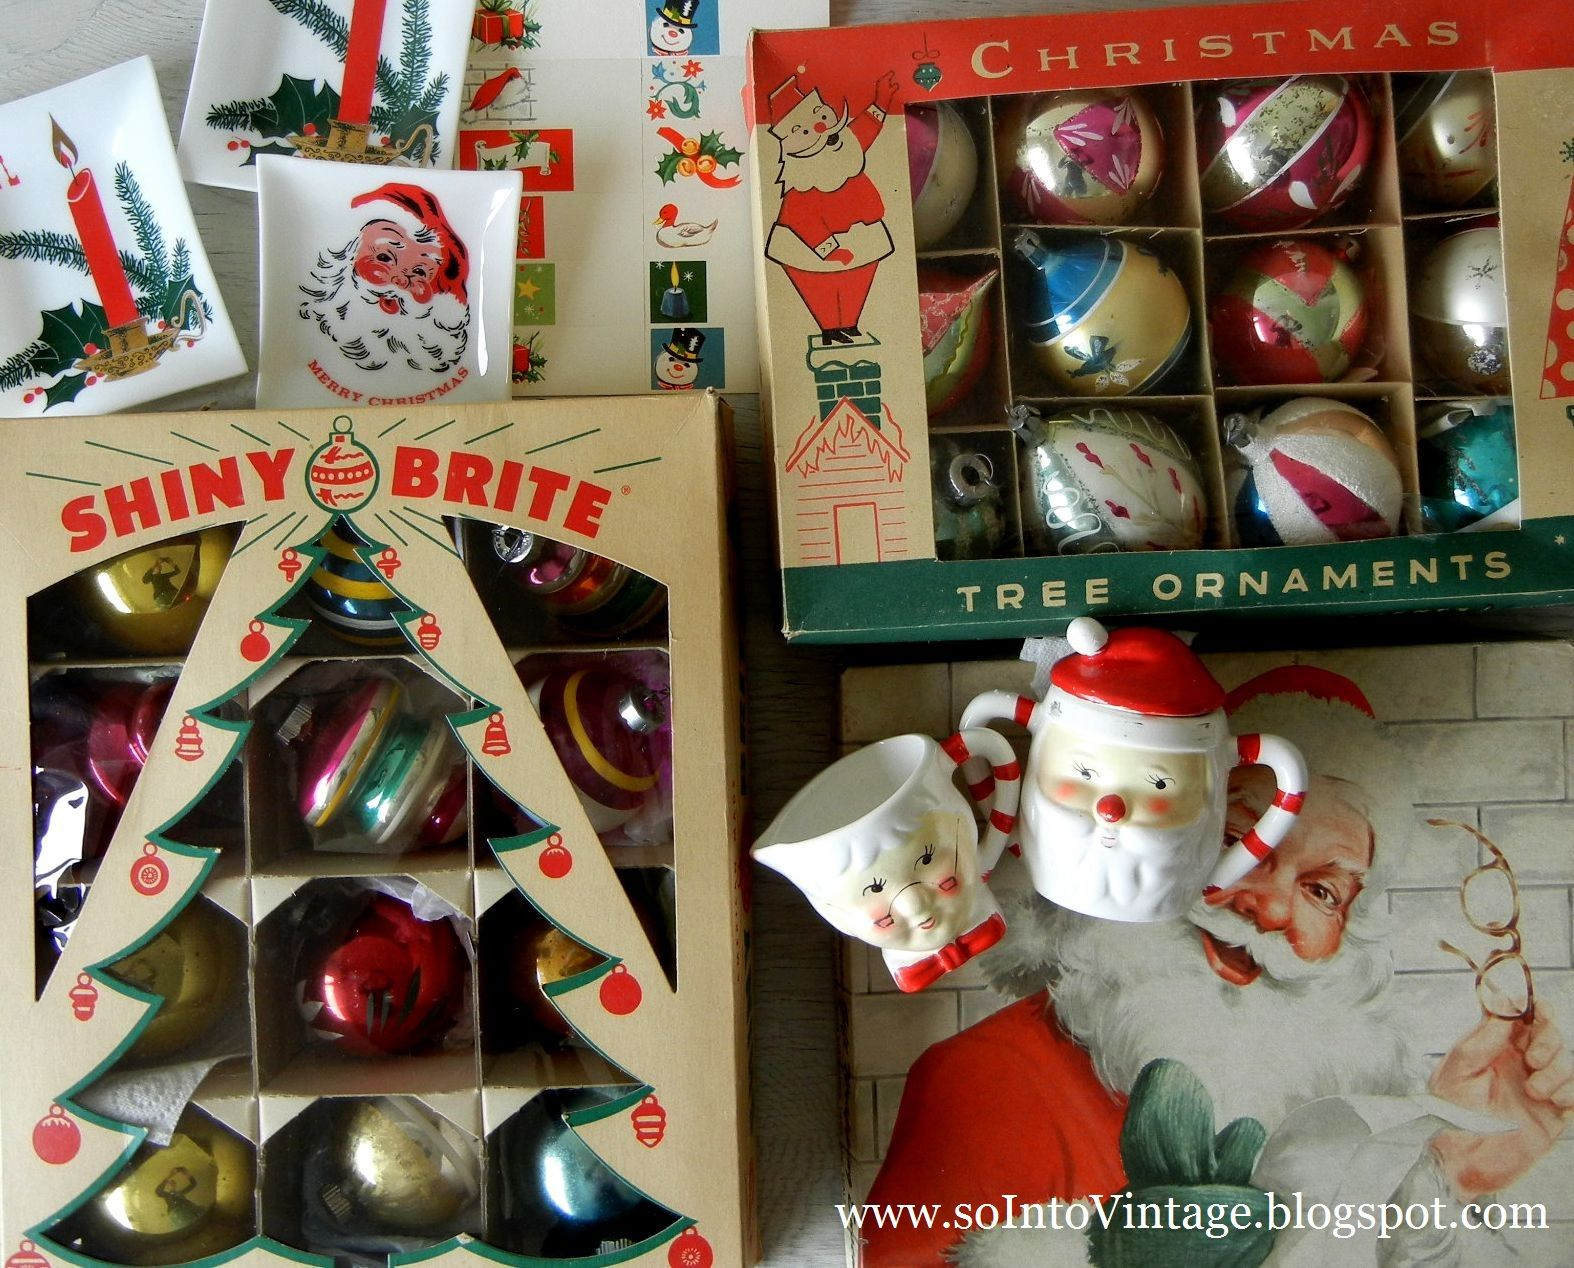 Into Vintage Vintage Inspired Christmas